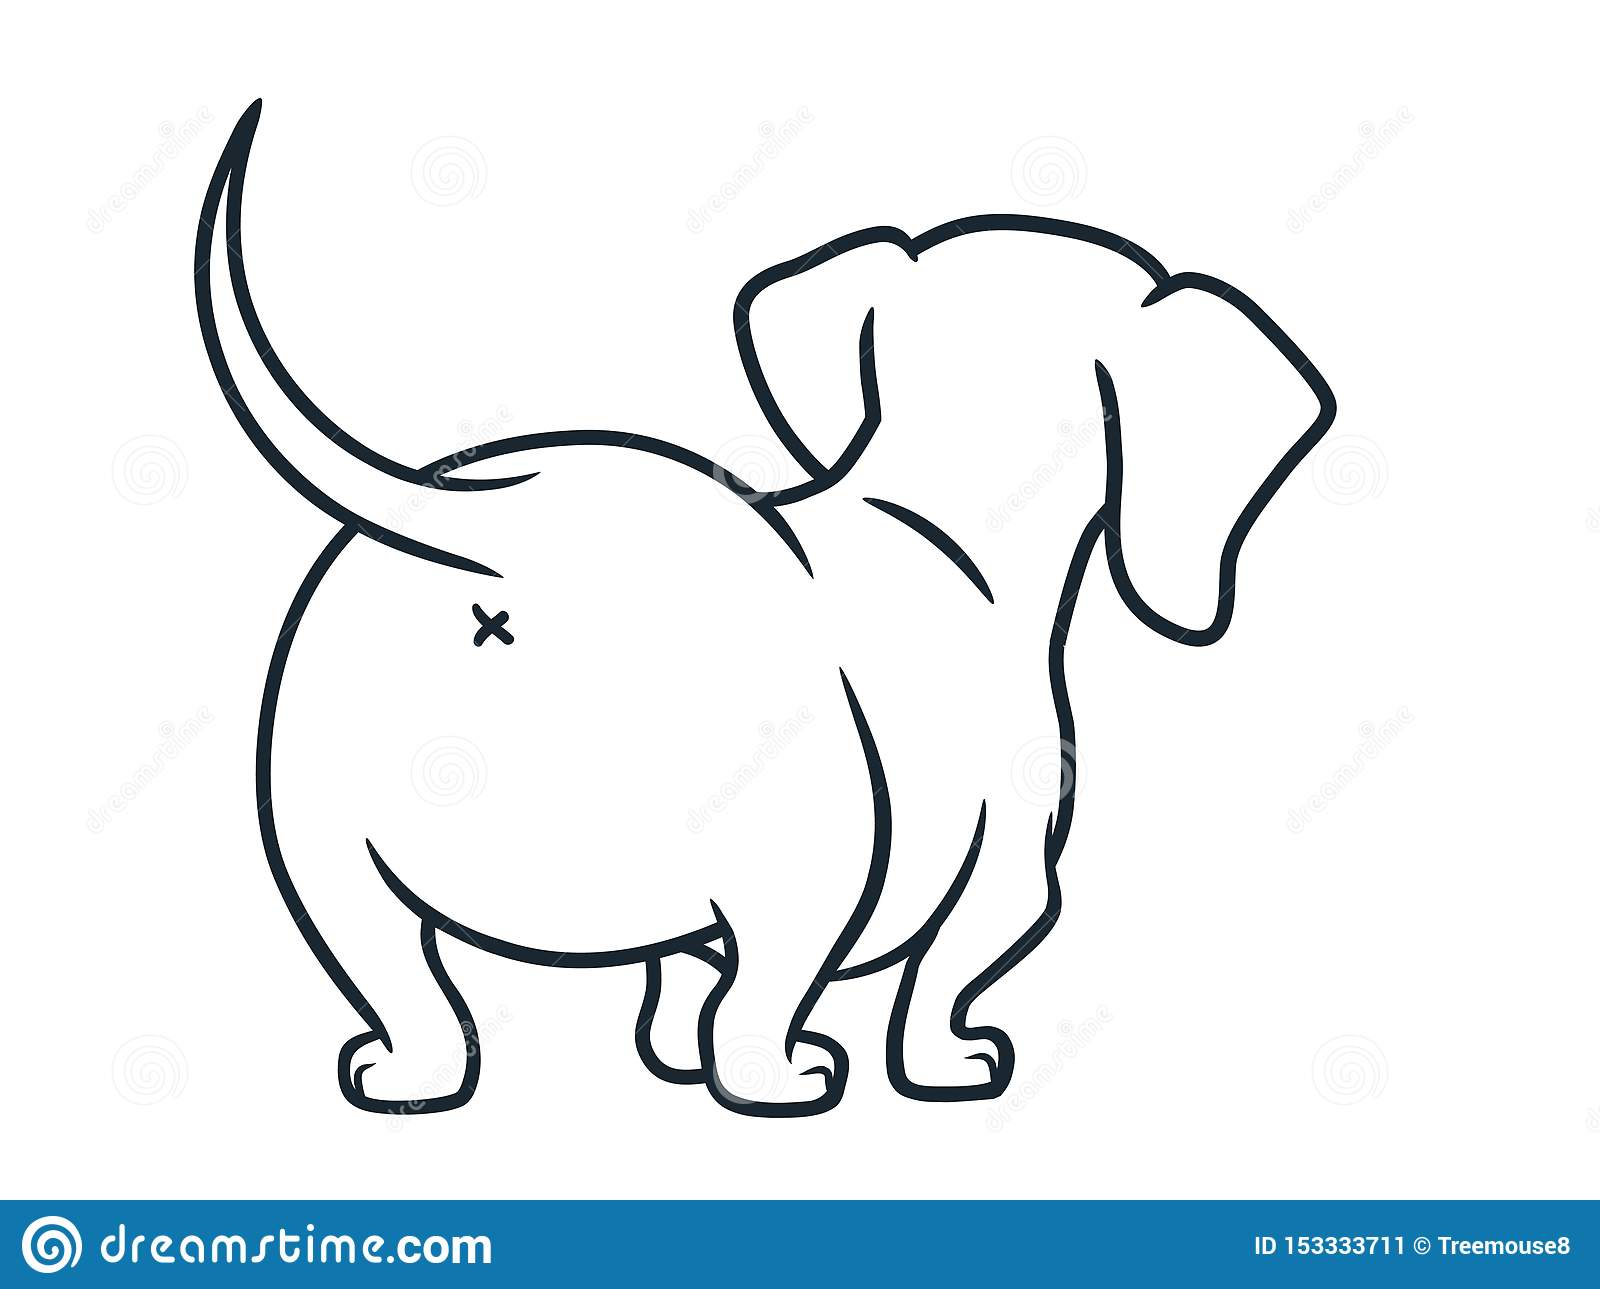 Cute Dachshund Sausage Dog Cartoon Illustration Isolated On White Simple Black And White Line Drawing Of Wiener Puppy Stock Illustration Illustration Of Page Standing 153333711